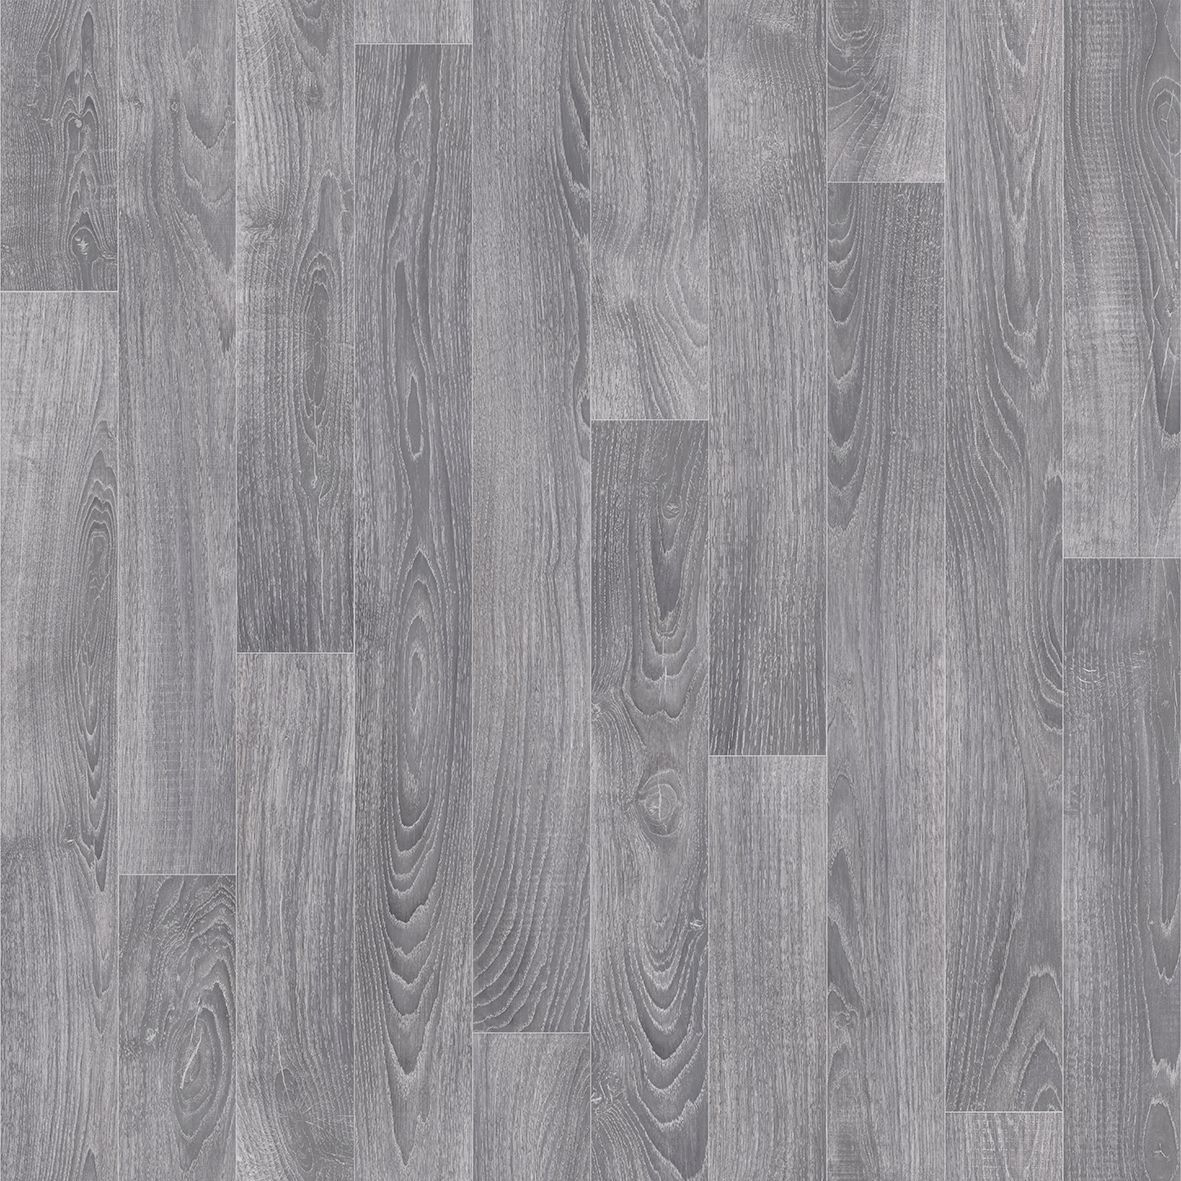 Grey Oak Effect Vinyl Flooring 4 M 178 Departments Tradepoint